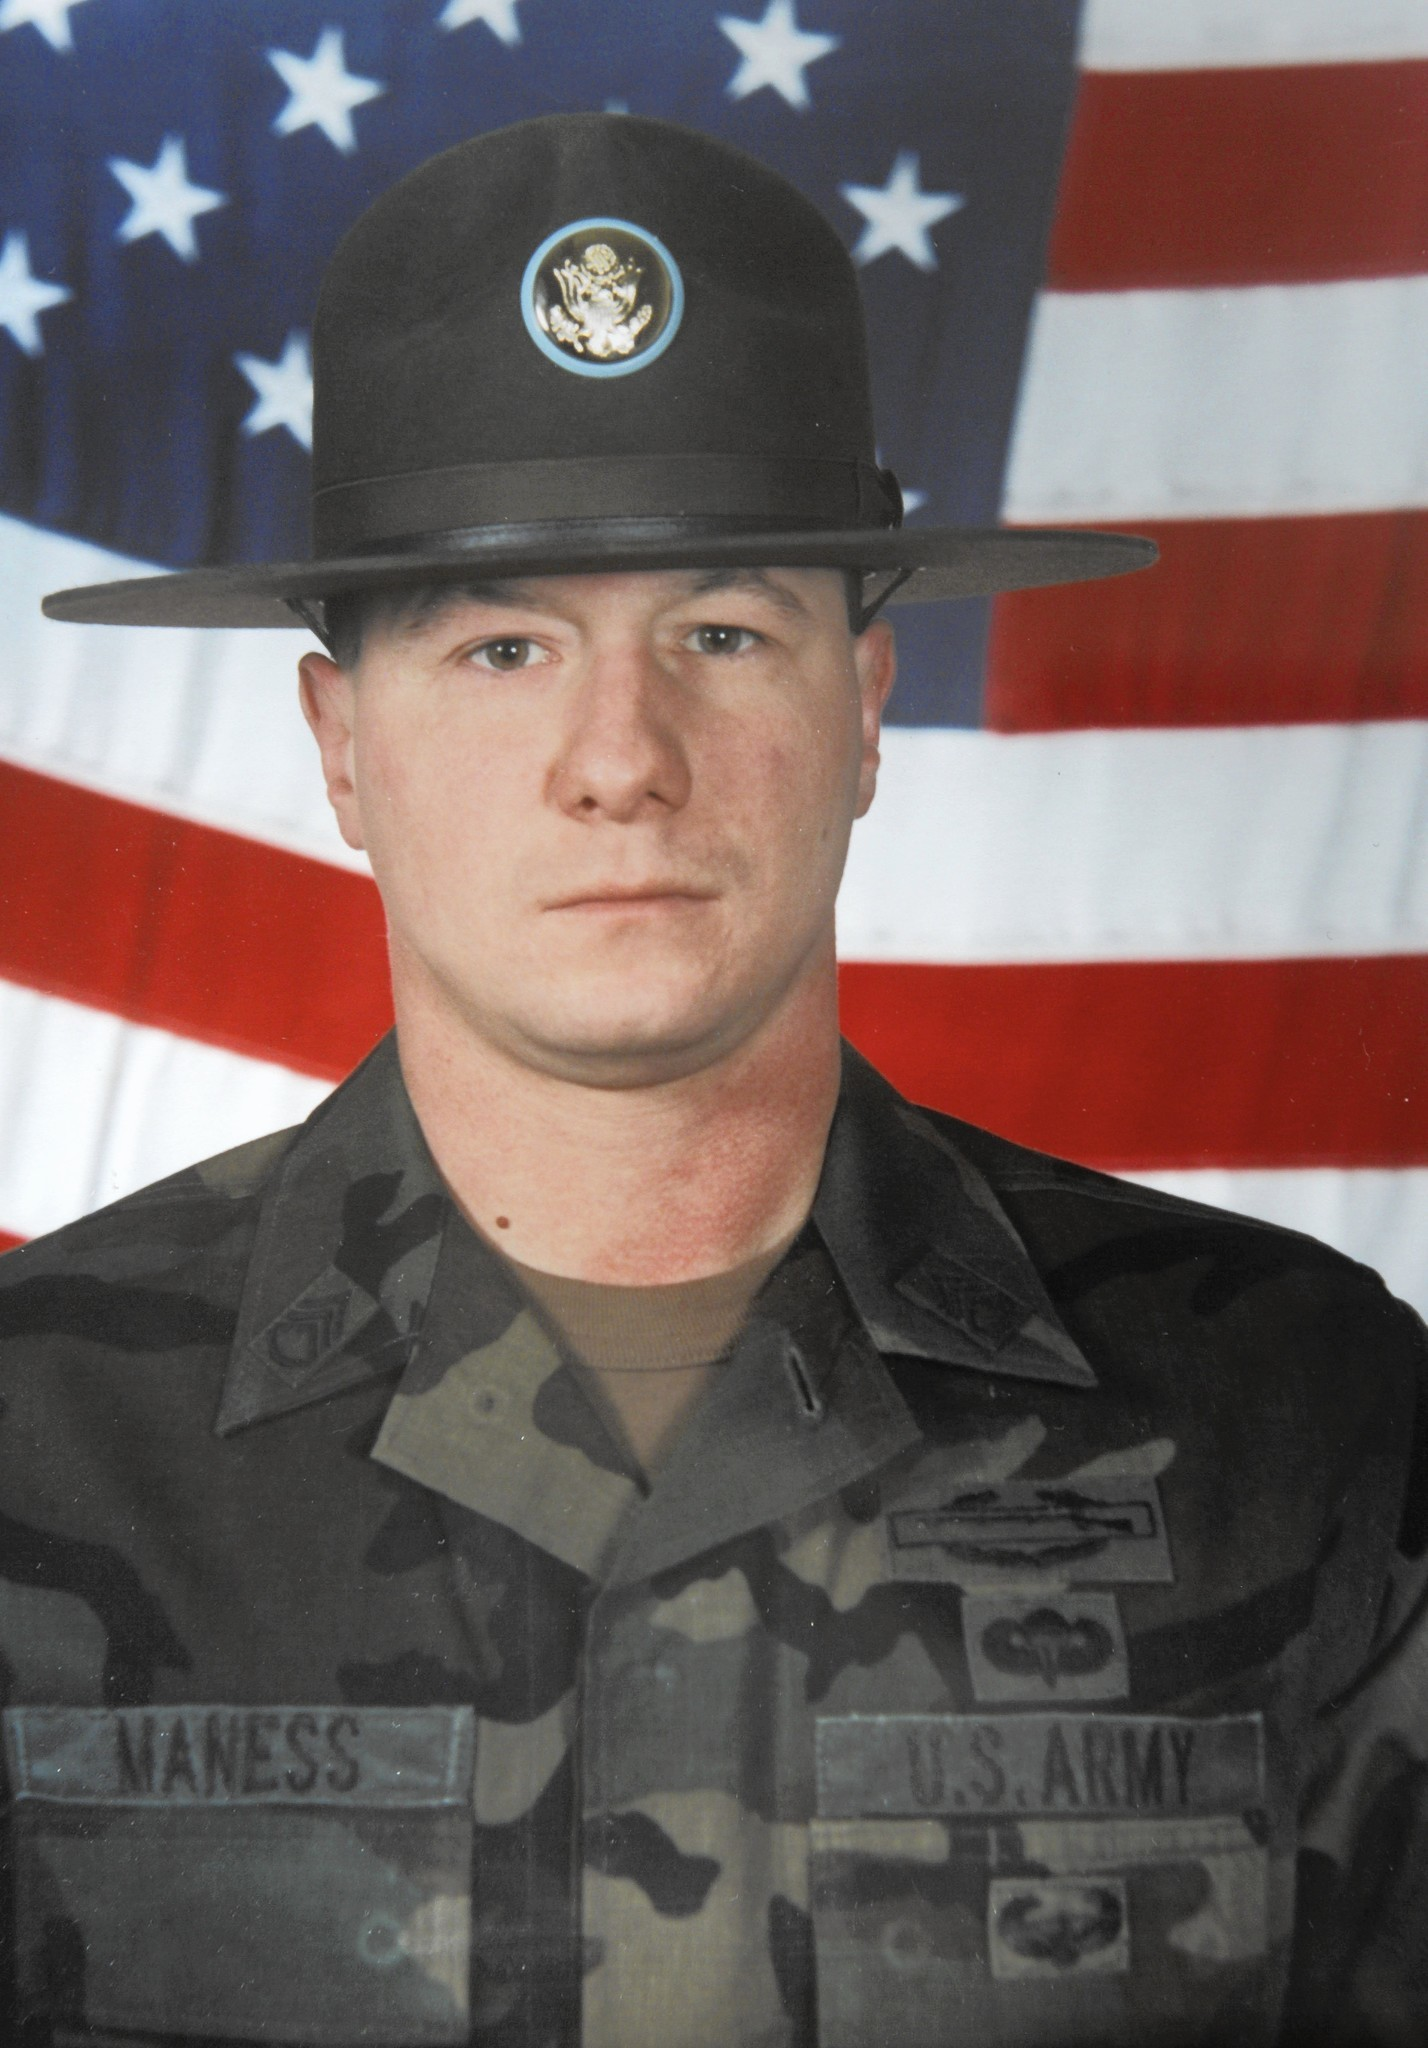 Memorial ride to help vets honors McHenry deputy who died after shooting